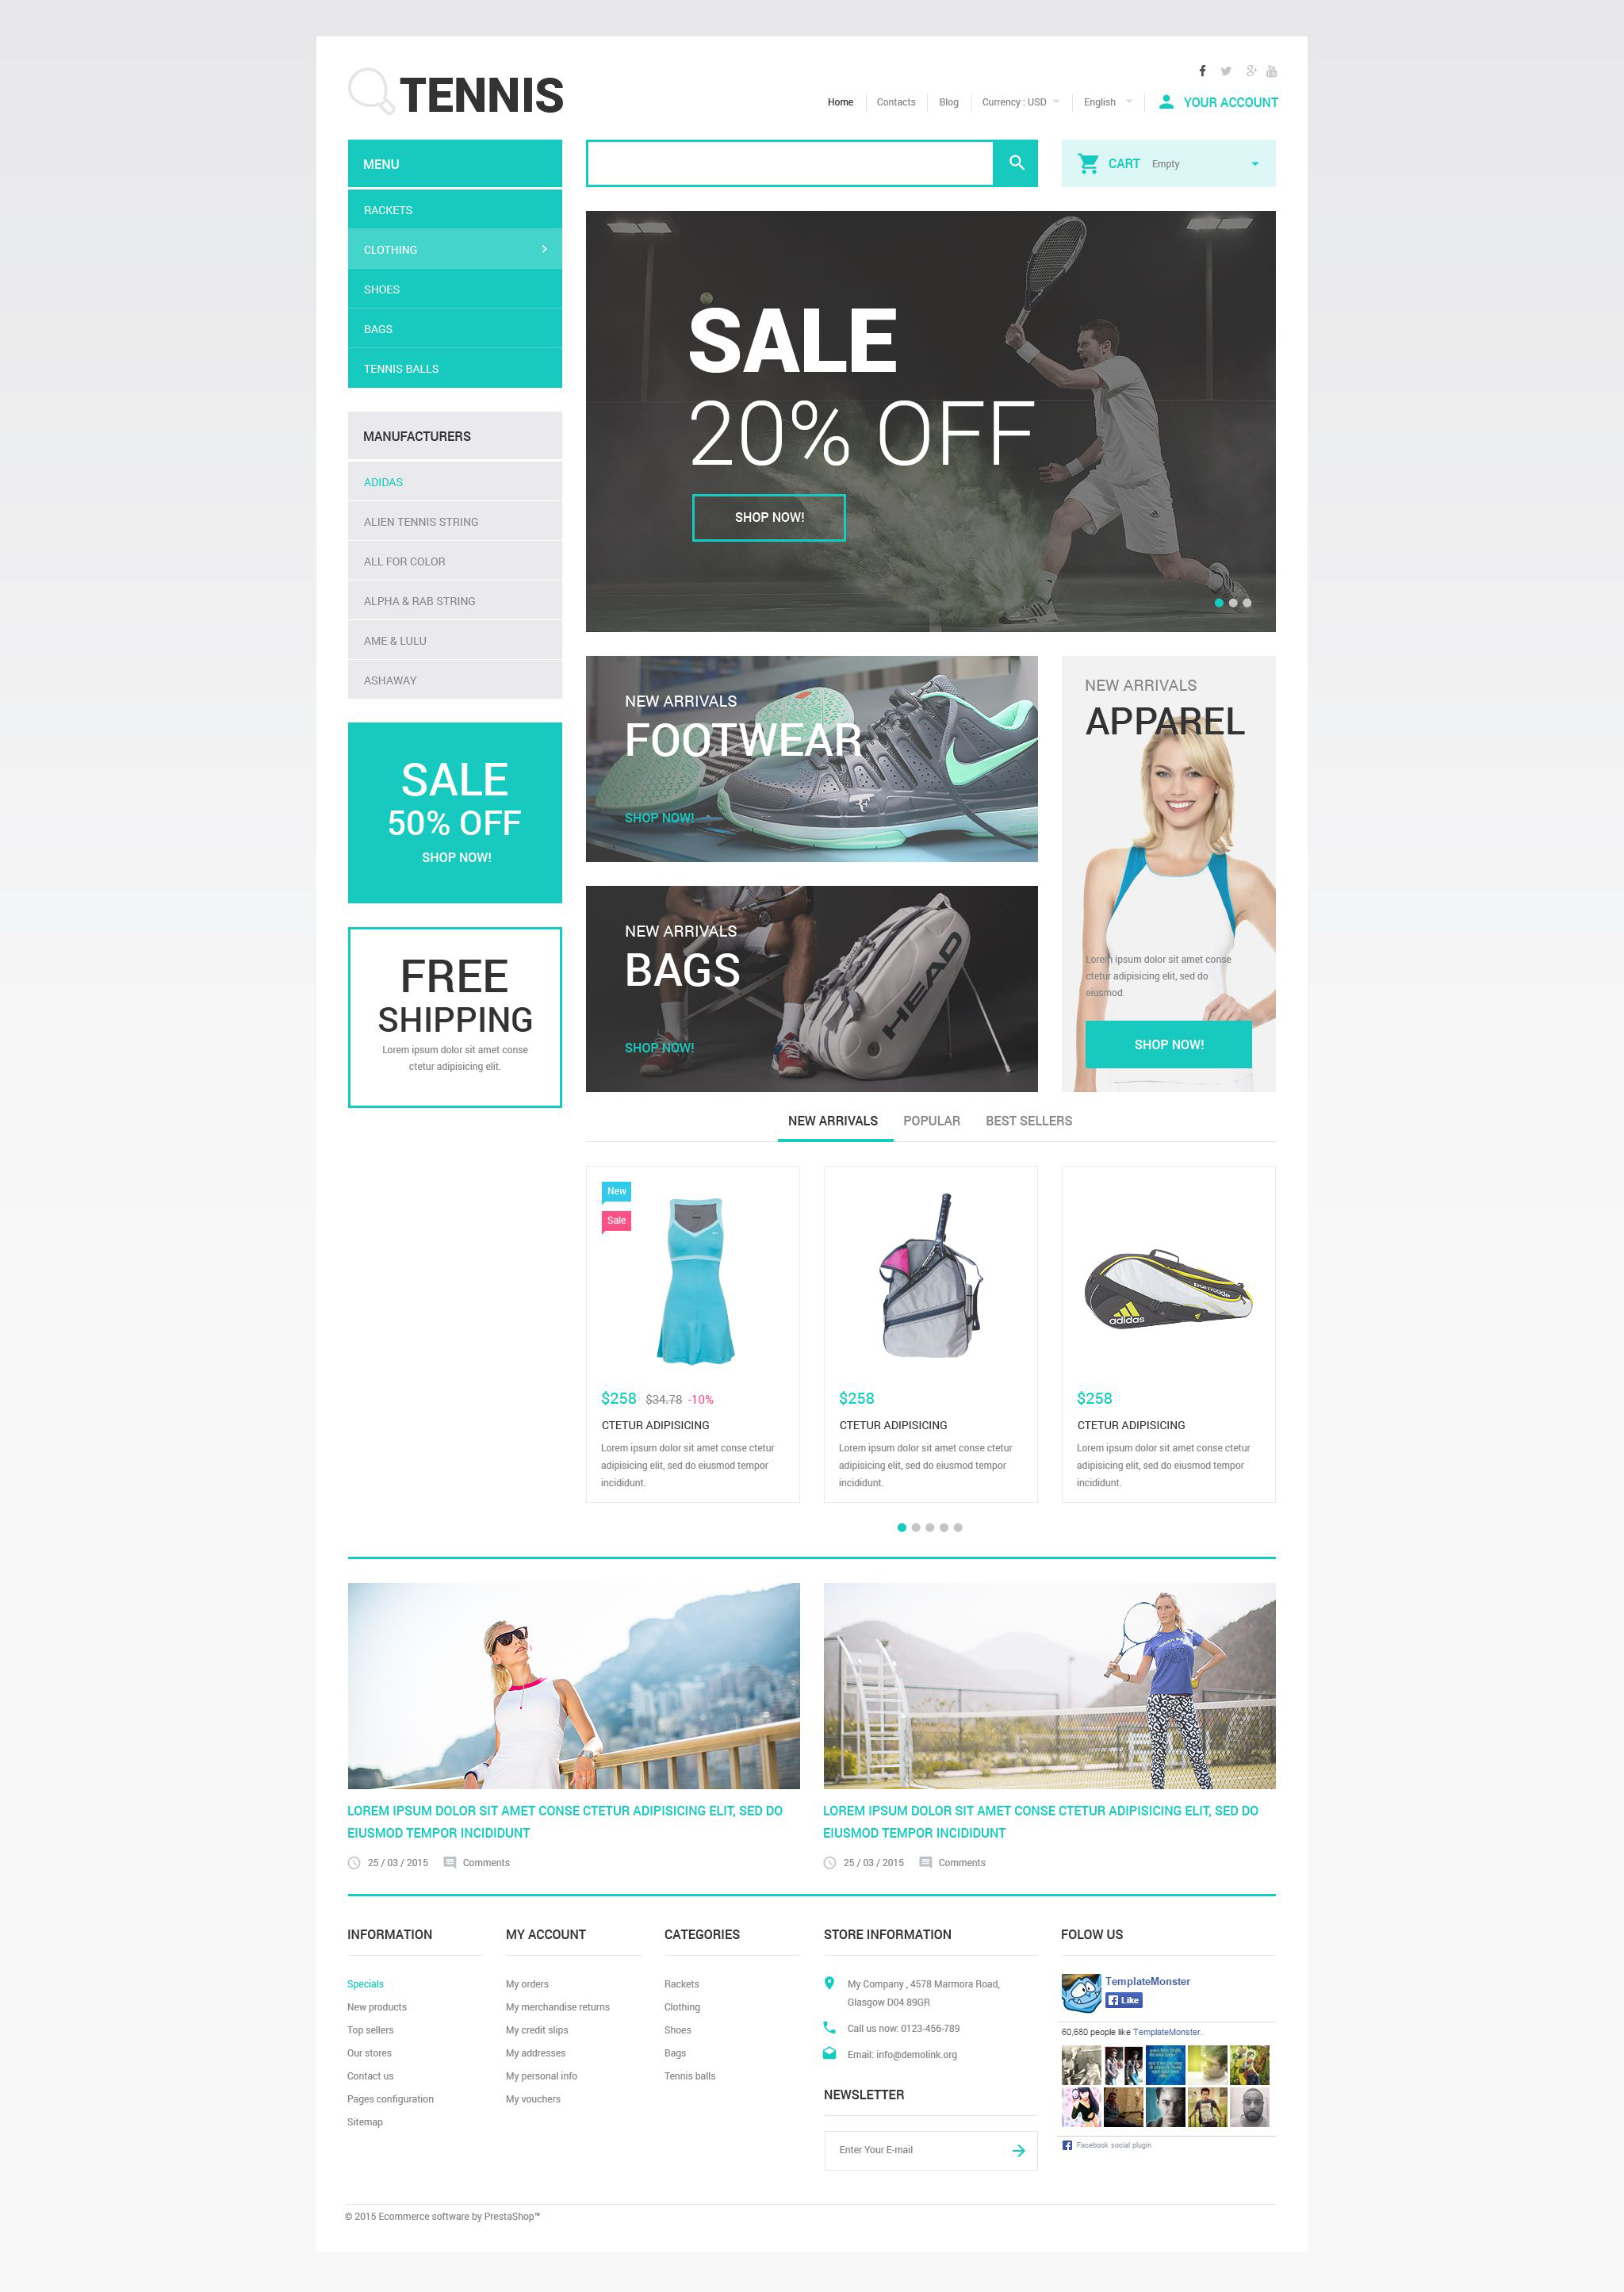 The Tennis Time Store PrestaShop Design 54621, one of the best PrestaShop themes of its kind (sport, most popular), also known as tennis time store PrestaShop template, shoes PrestaShop template, apparel PrestaShop template, string PrestaShop template, bags PrestaShop template, accessories PrestaShop template, sport PrestaShop template, racket PrestaShop template, racquet PrestaShop template, ball PrestaShop template, bags PrestaShop template, strings PrestaShop template, grips and related with tennis time store, shoes, apparel, string, bags, accessories, sport, racket, racquet, ball, bags, strings, grips, etc.